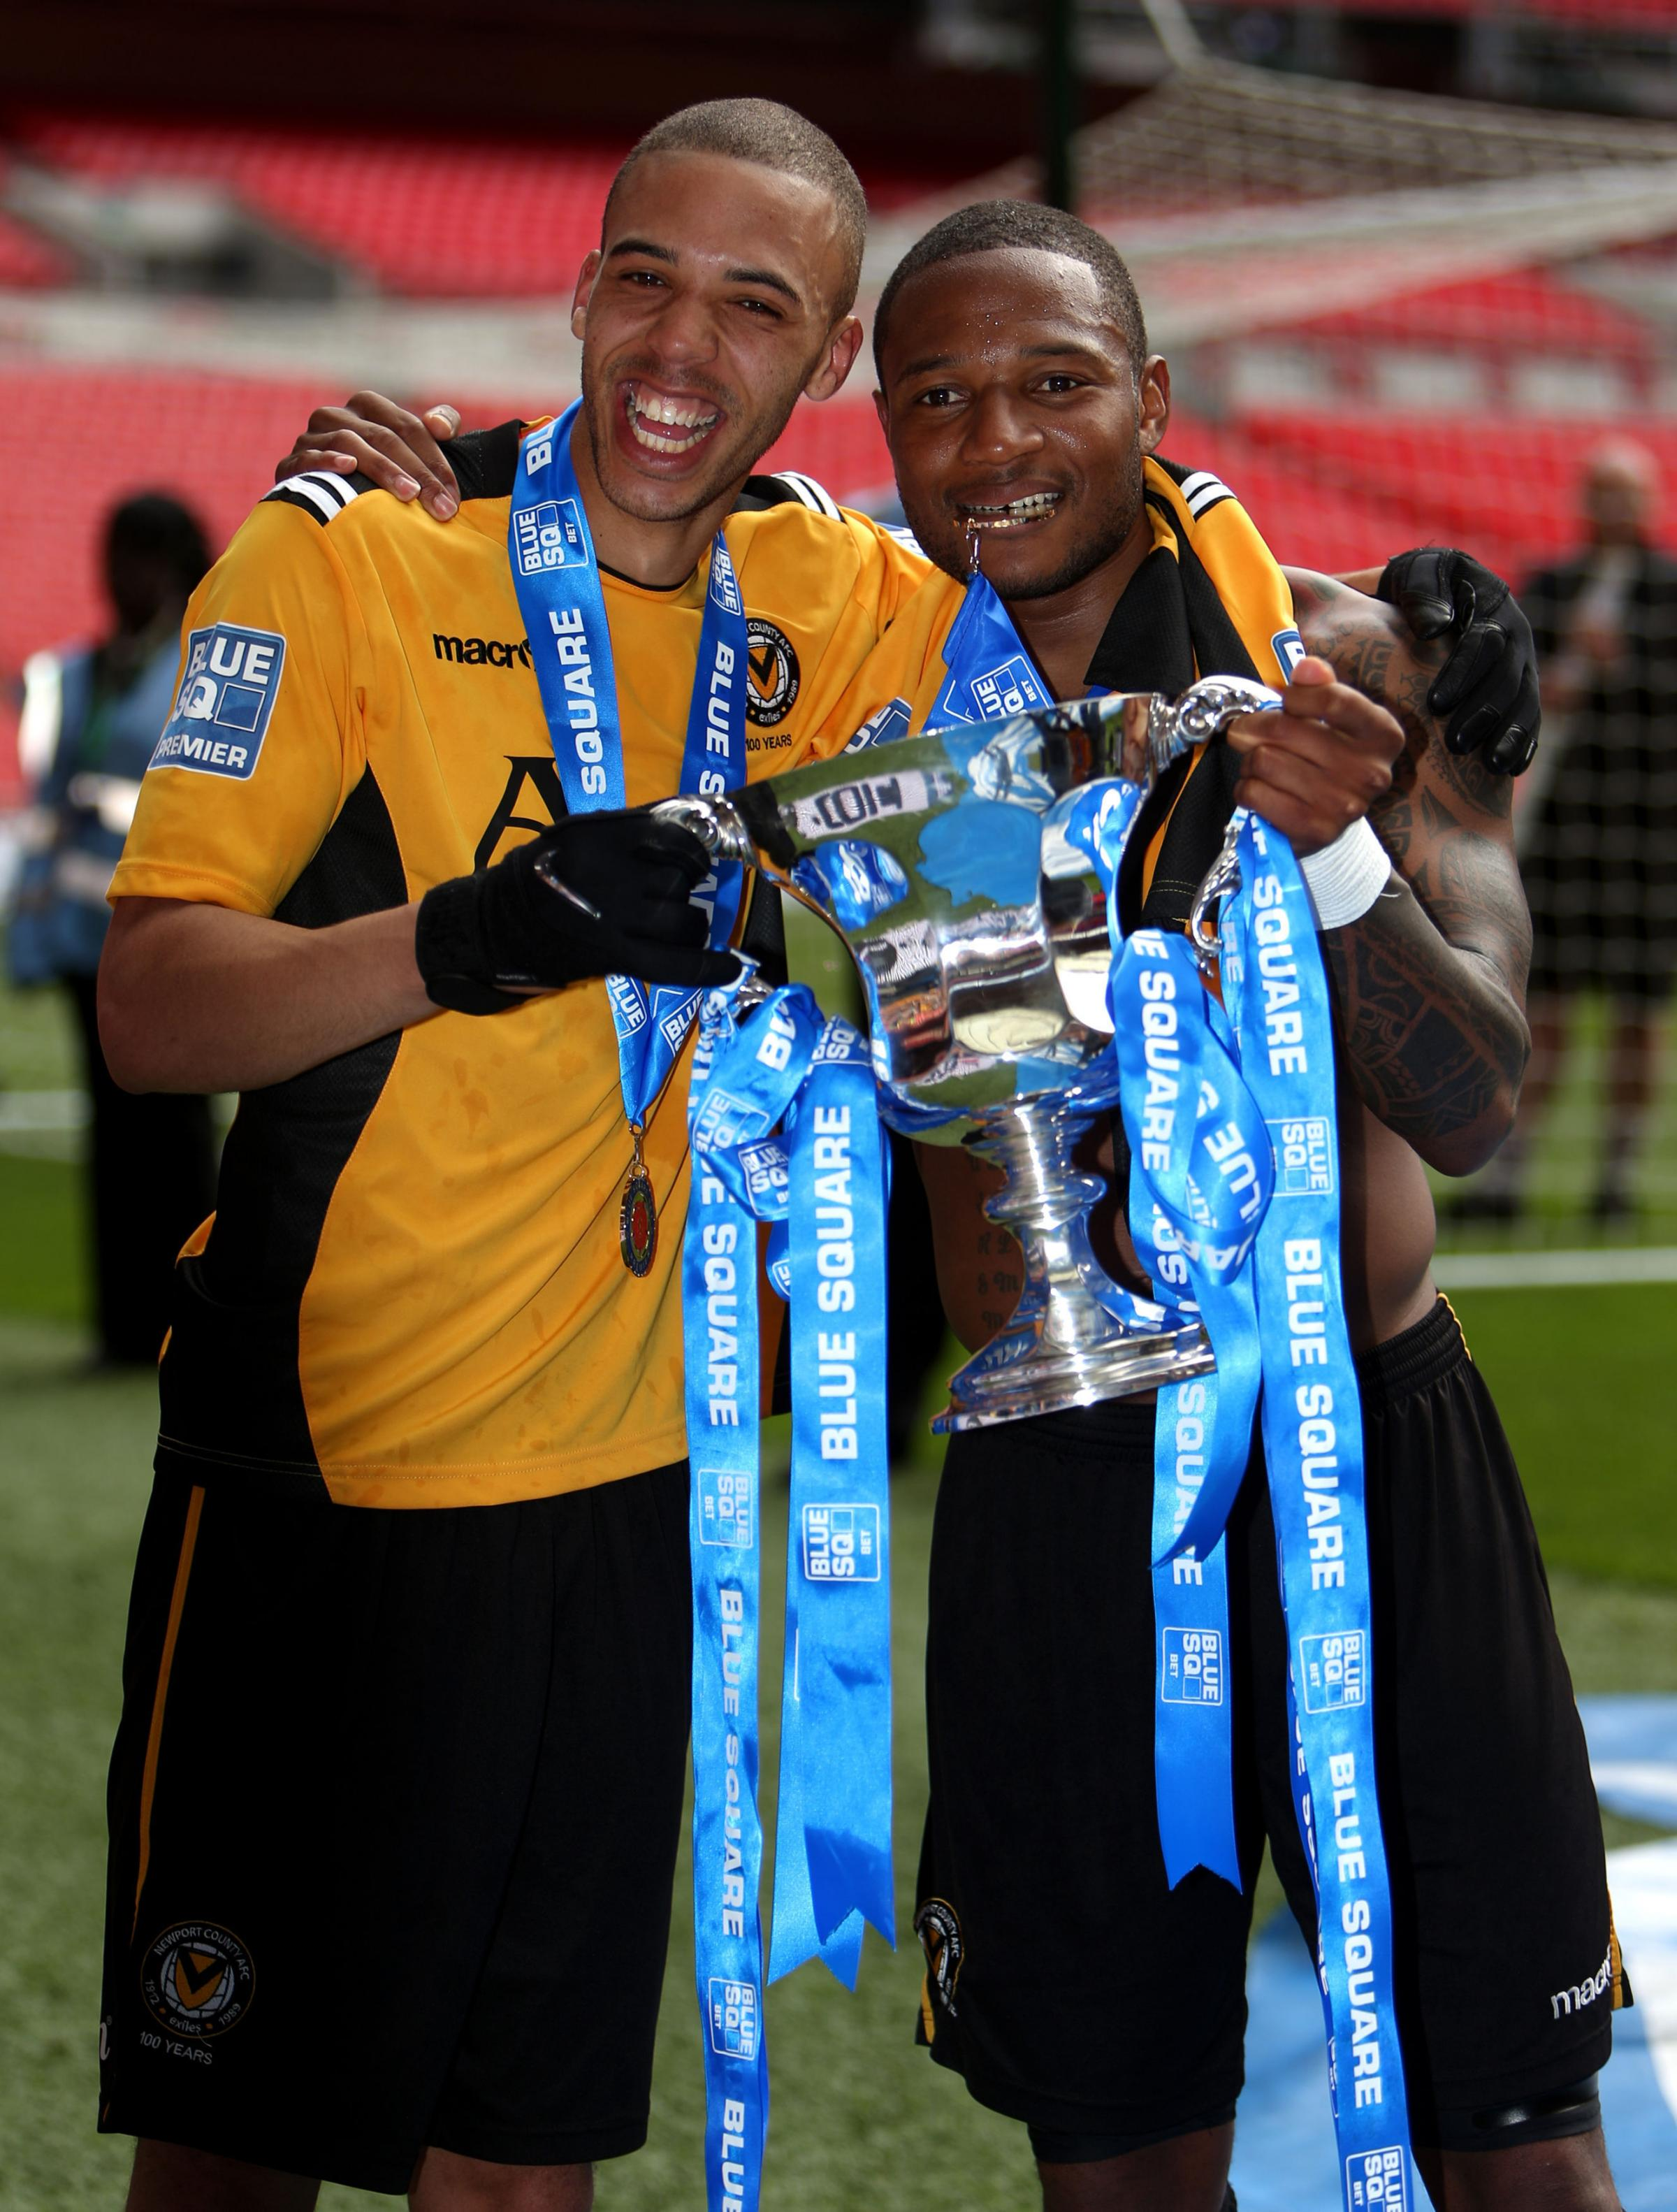 Newport County's goalscorers Christian Jolley (left) and Aaron O'Connor celebrate with the trophy during the Blue Square Premier League Play-Off Final at Wembley Stadium, London. PRESS ASSOCIATION Photo. Picture date: Sunday May 5, 2013. See PA st